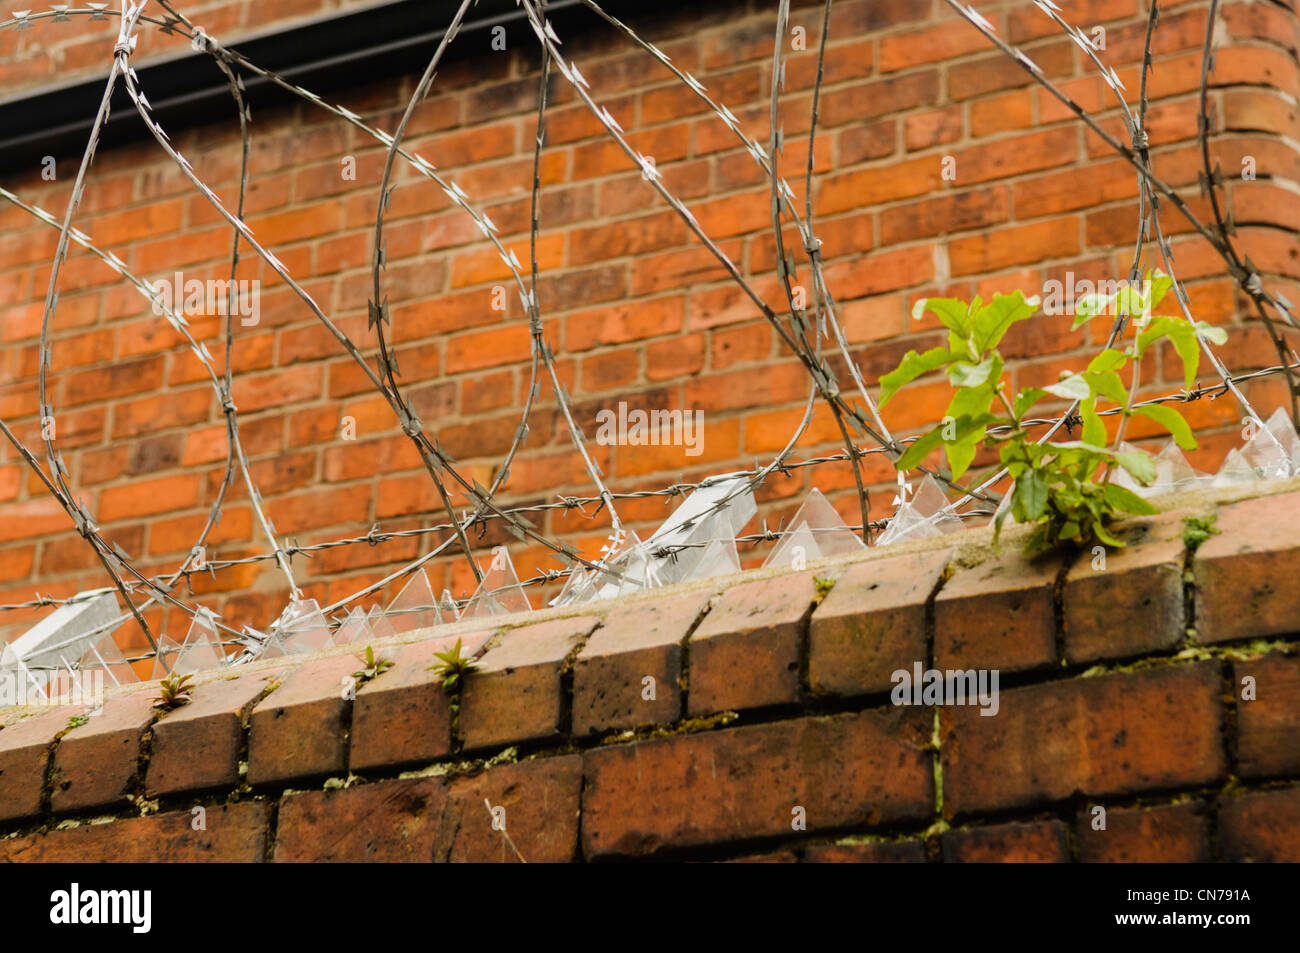 Broken glass and barbed/razor wire on top of a wall to deter burglars - Stock Image